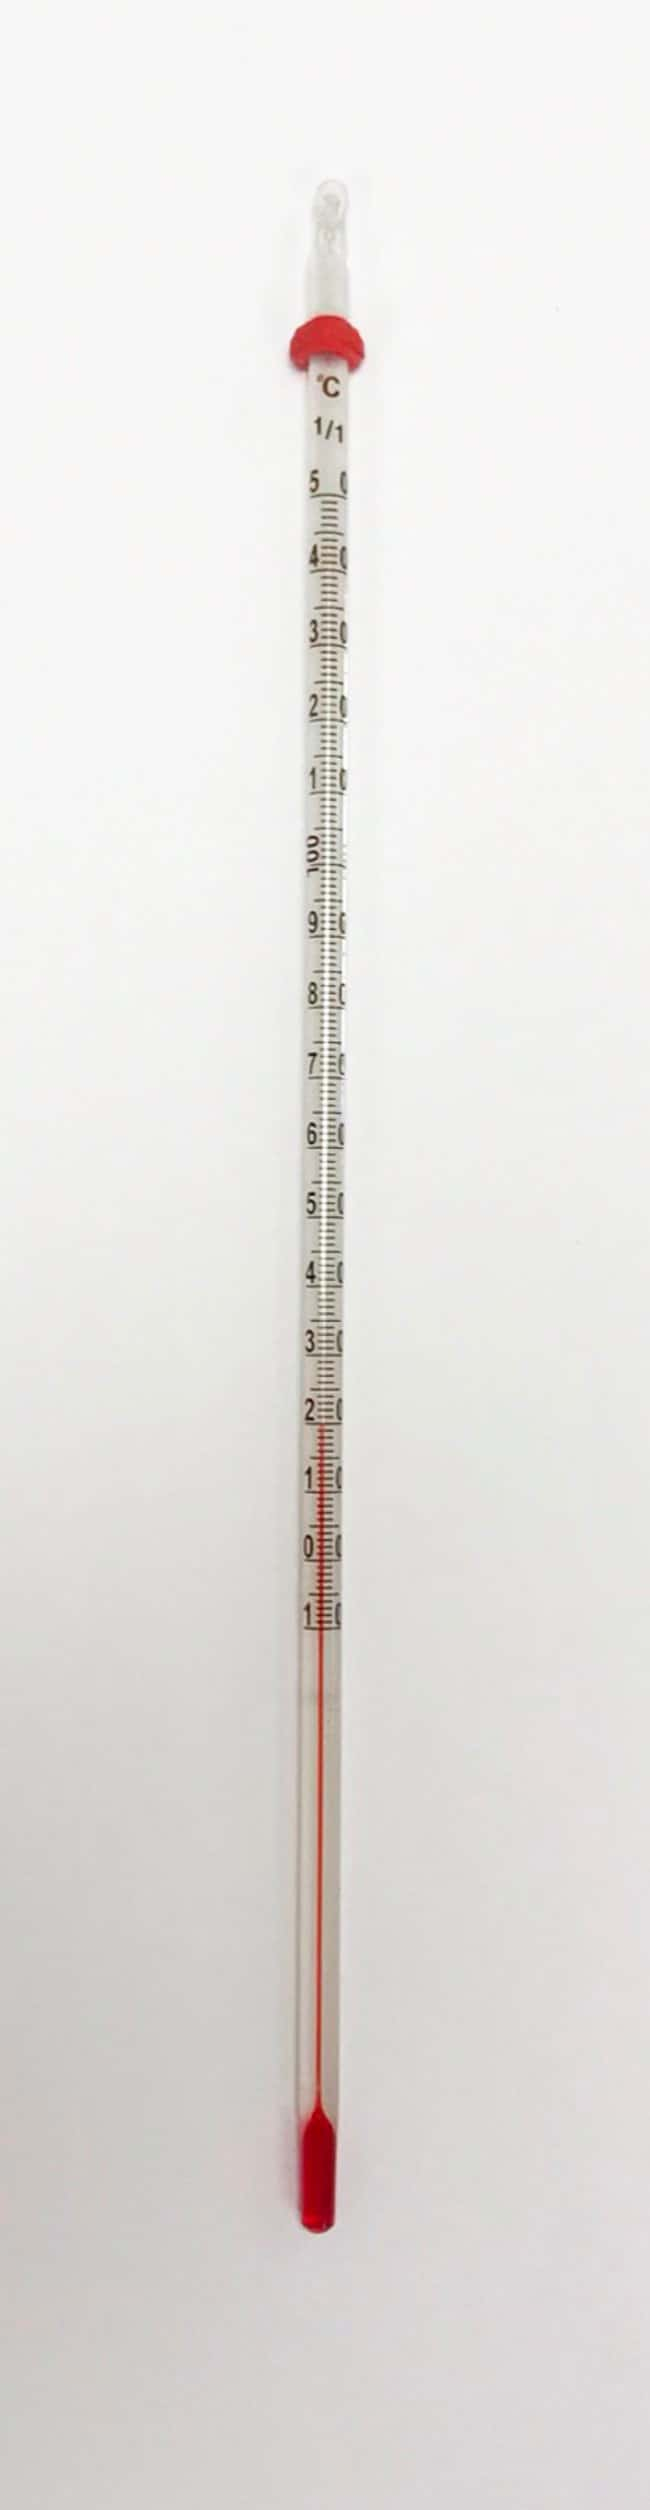 United Scientific Supplies Red Spirit Filled Thermometers  Partial Immersion,